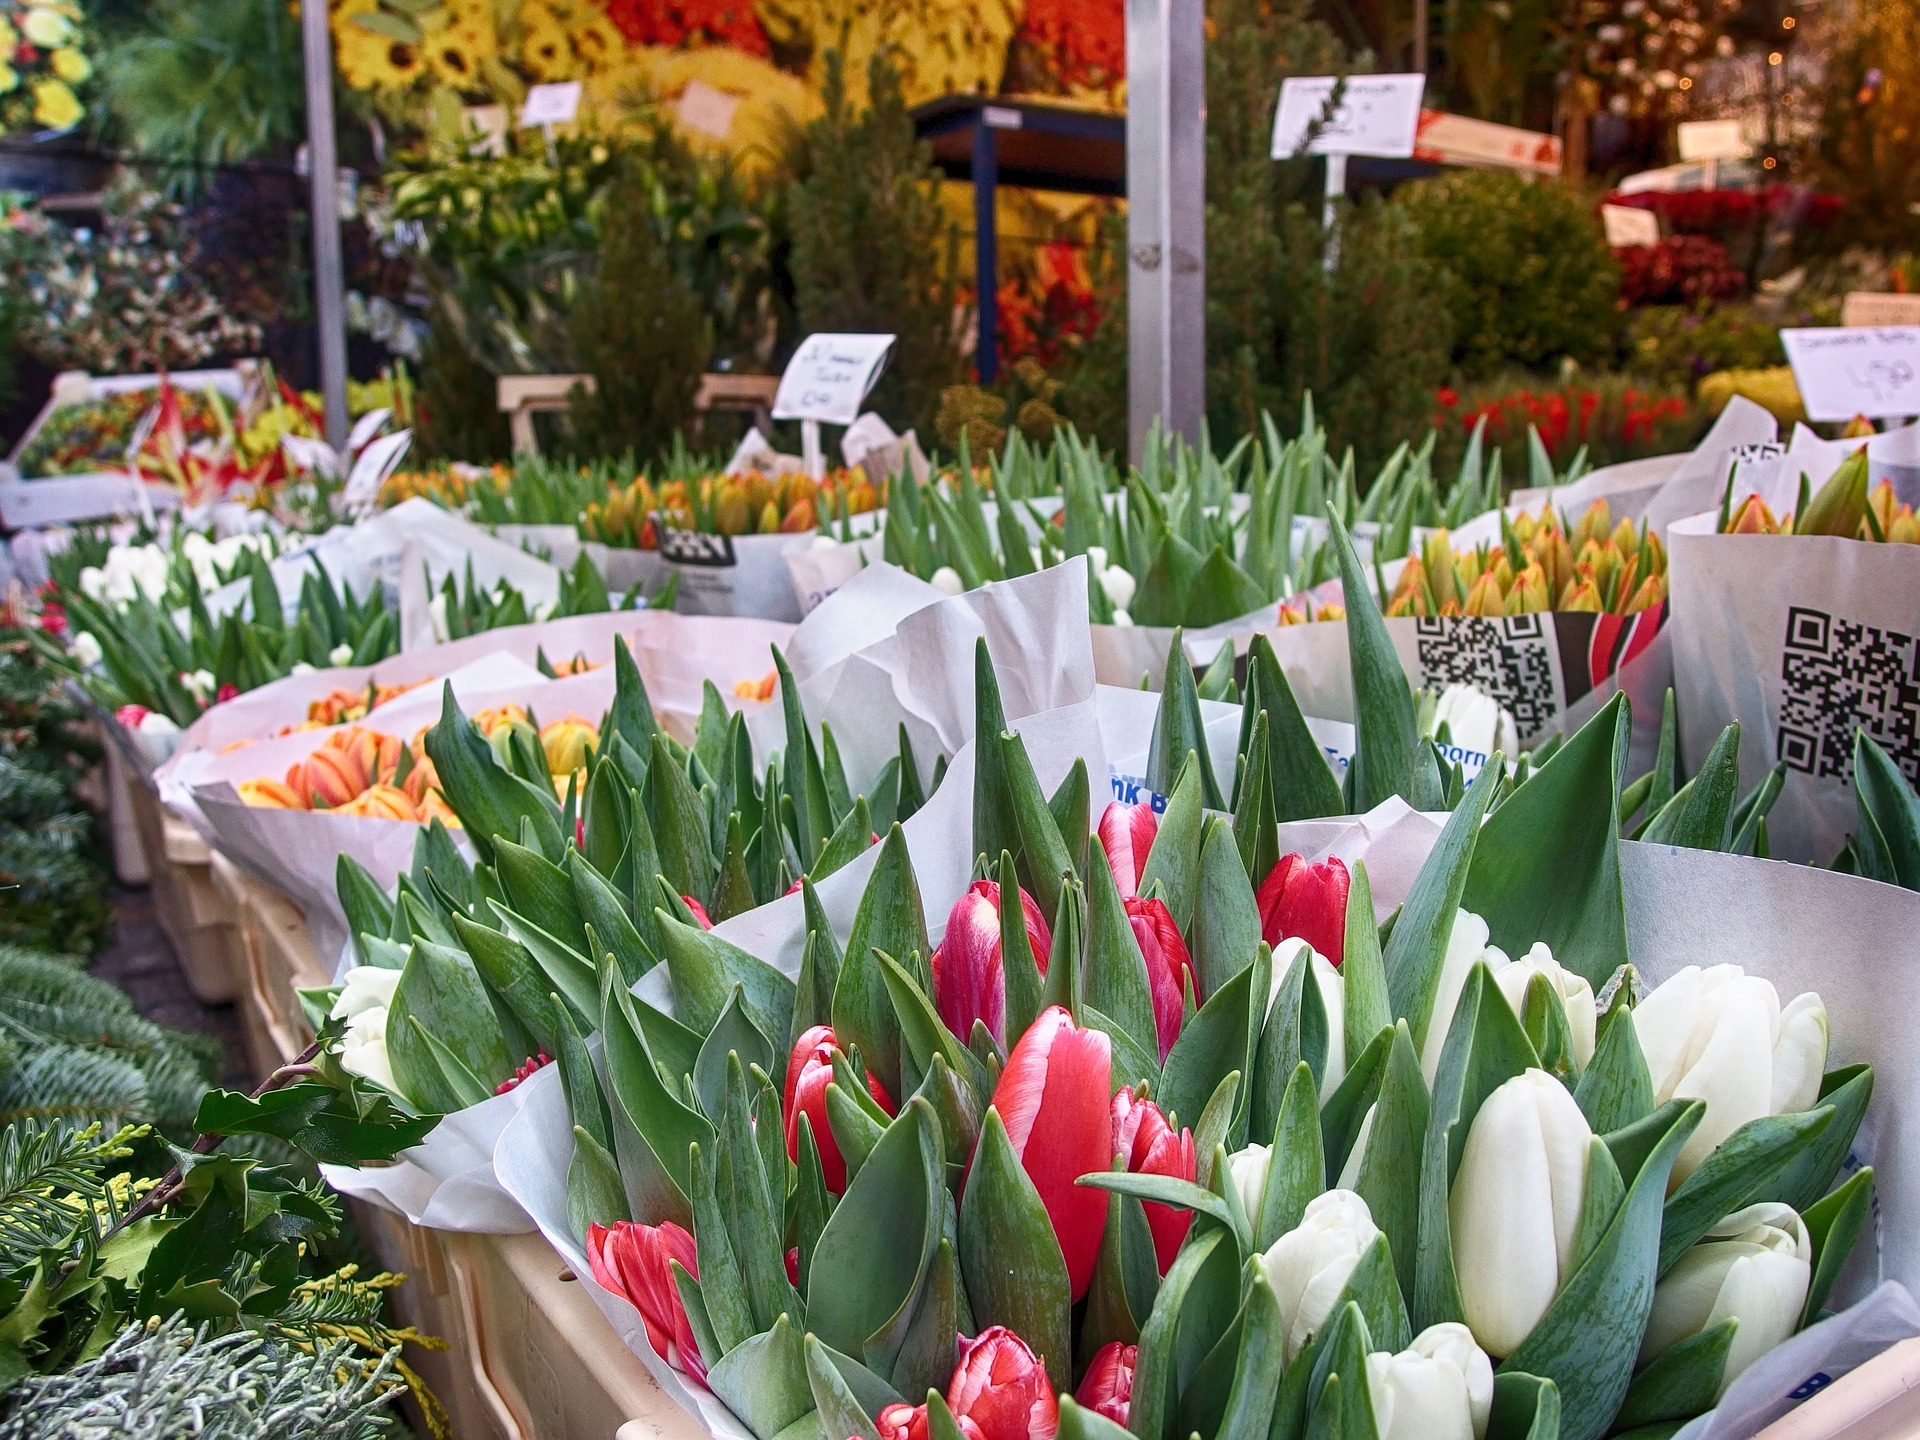 The Netherlands is the international trade center for flowers, why not buy a beautiful bouquet for your love?